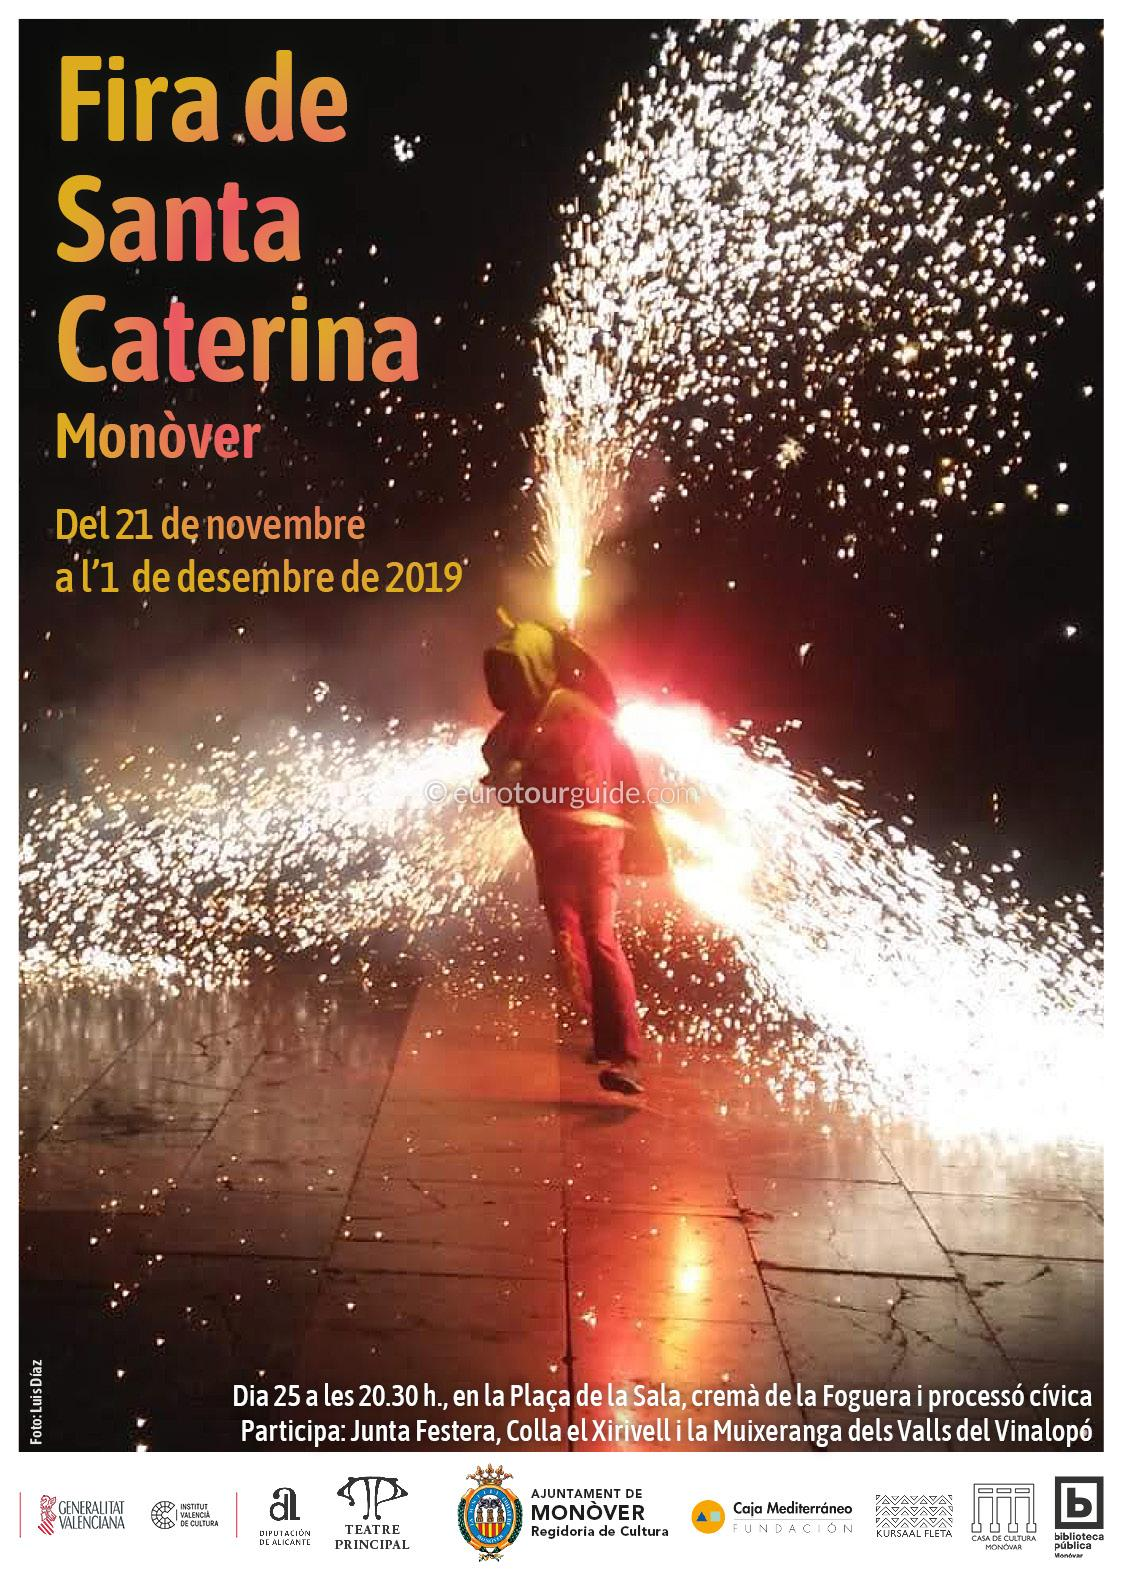 Monovar Fira de Santa Caterina 22nd November - 1st December 2019